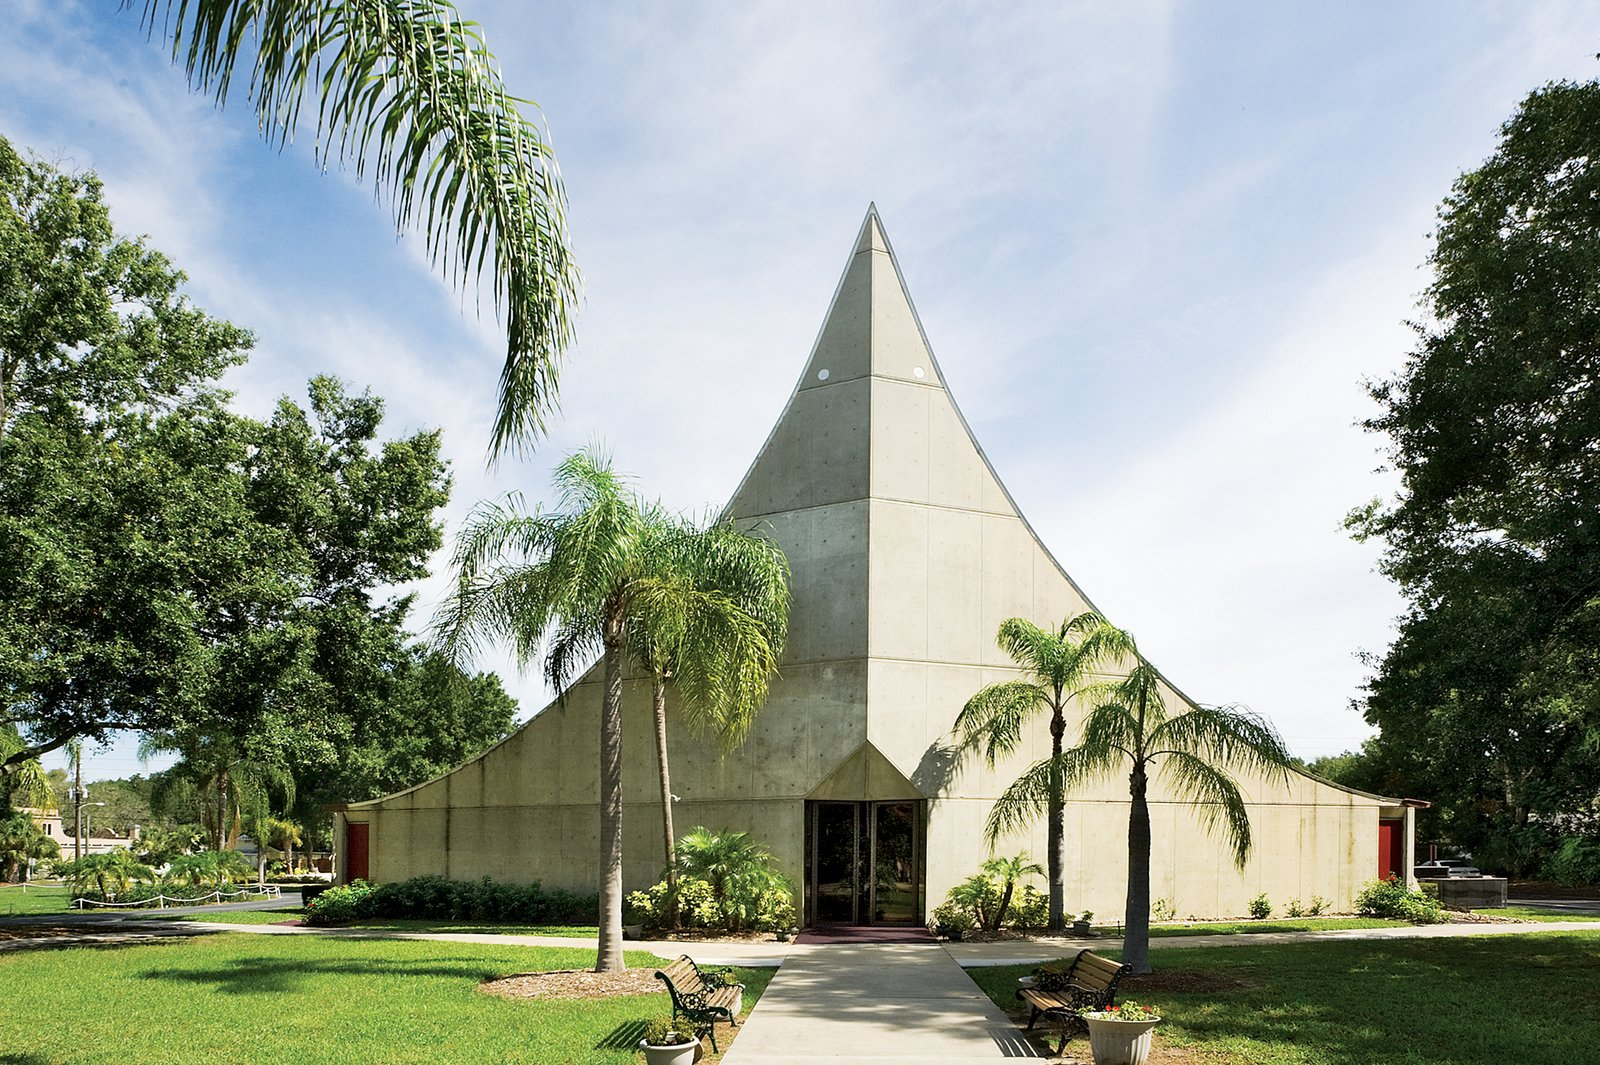 St. Paul Lutheran Church Sanctuary 1968, Sarasota, FL Architect Victor Lundy, FAIA  Victor A. Lundy, FAIA by SarasotaMOD Weekend